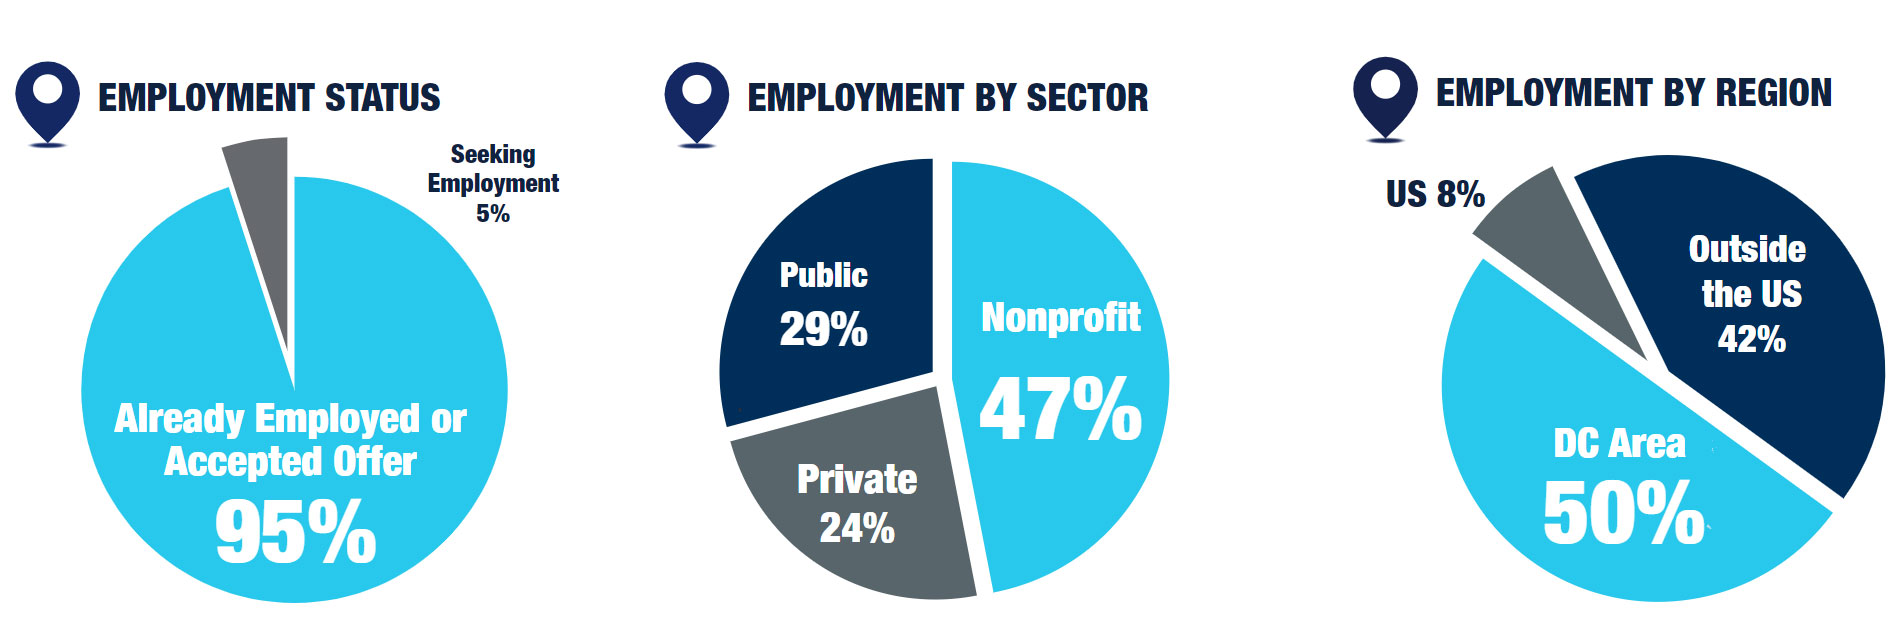 MIDP program outcomes infographic highlights: 95% already employed or accepted offer, 47% in nonprofit sector, 50% in Dc area & 42% outside of US.